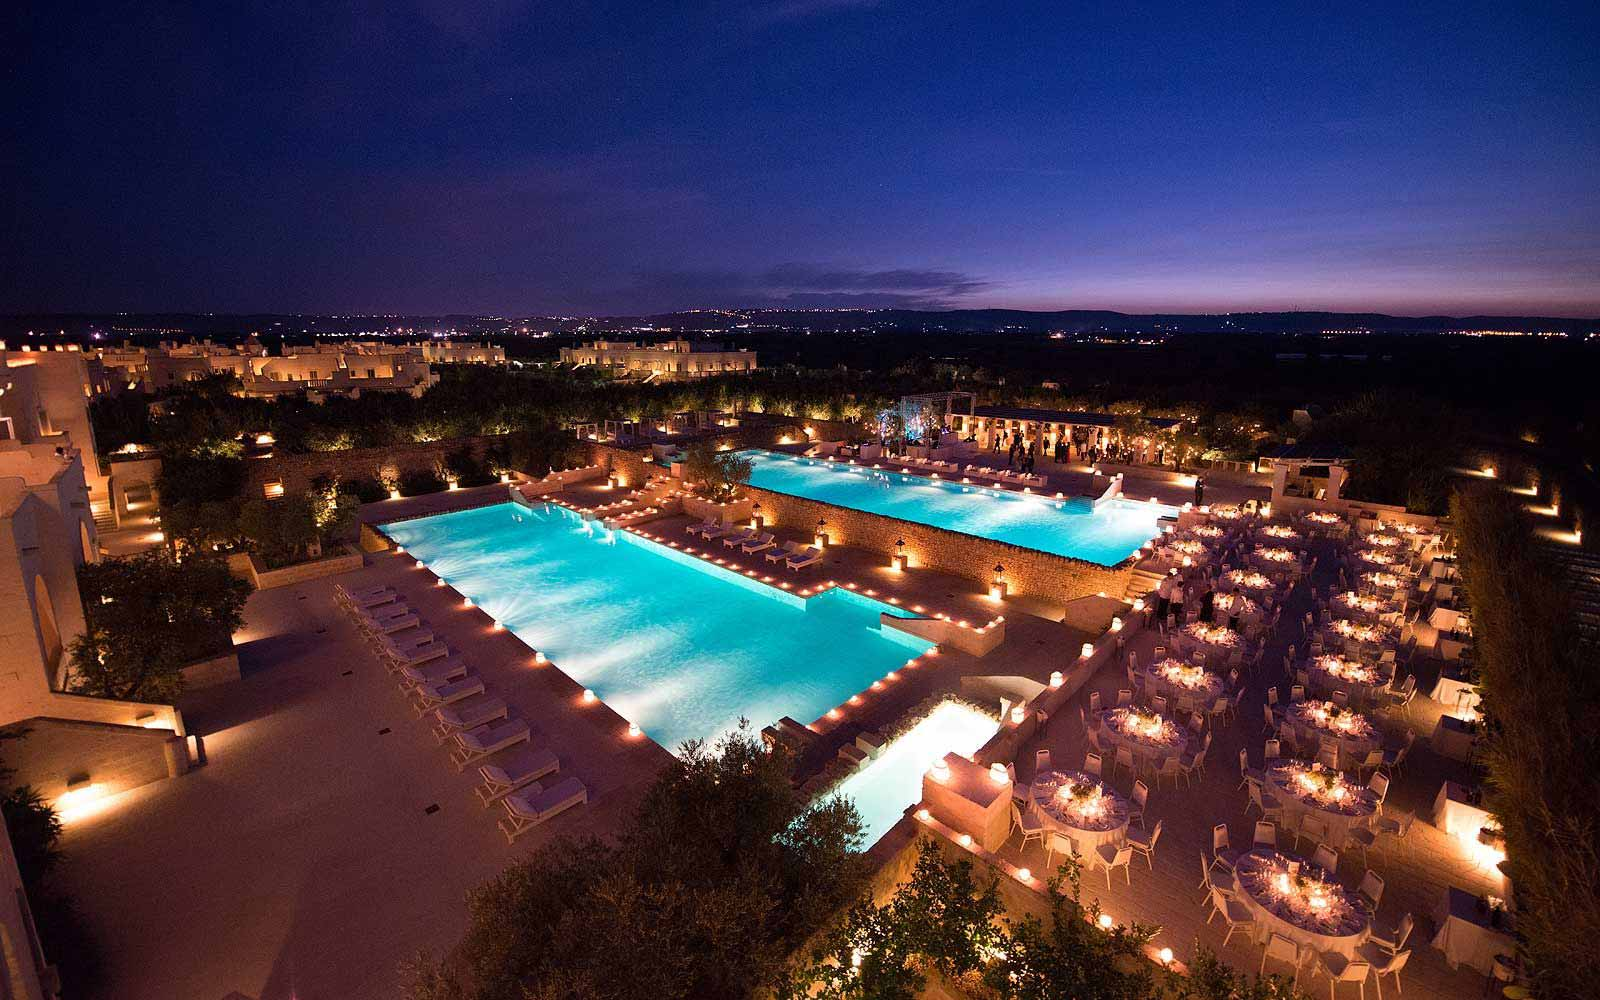 Nighttime panoramic view of the Borgo Egnazia